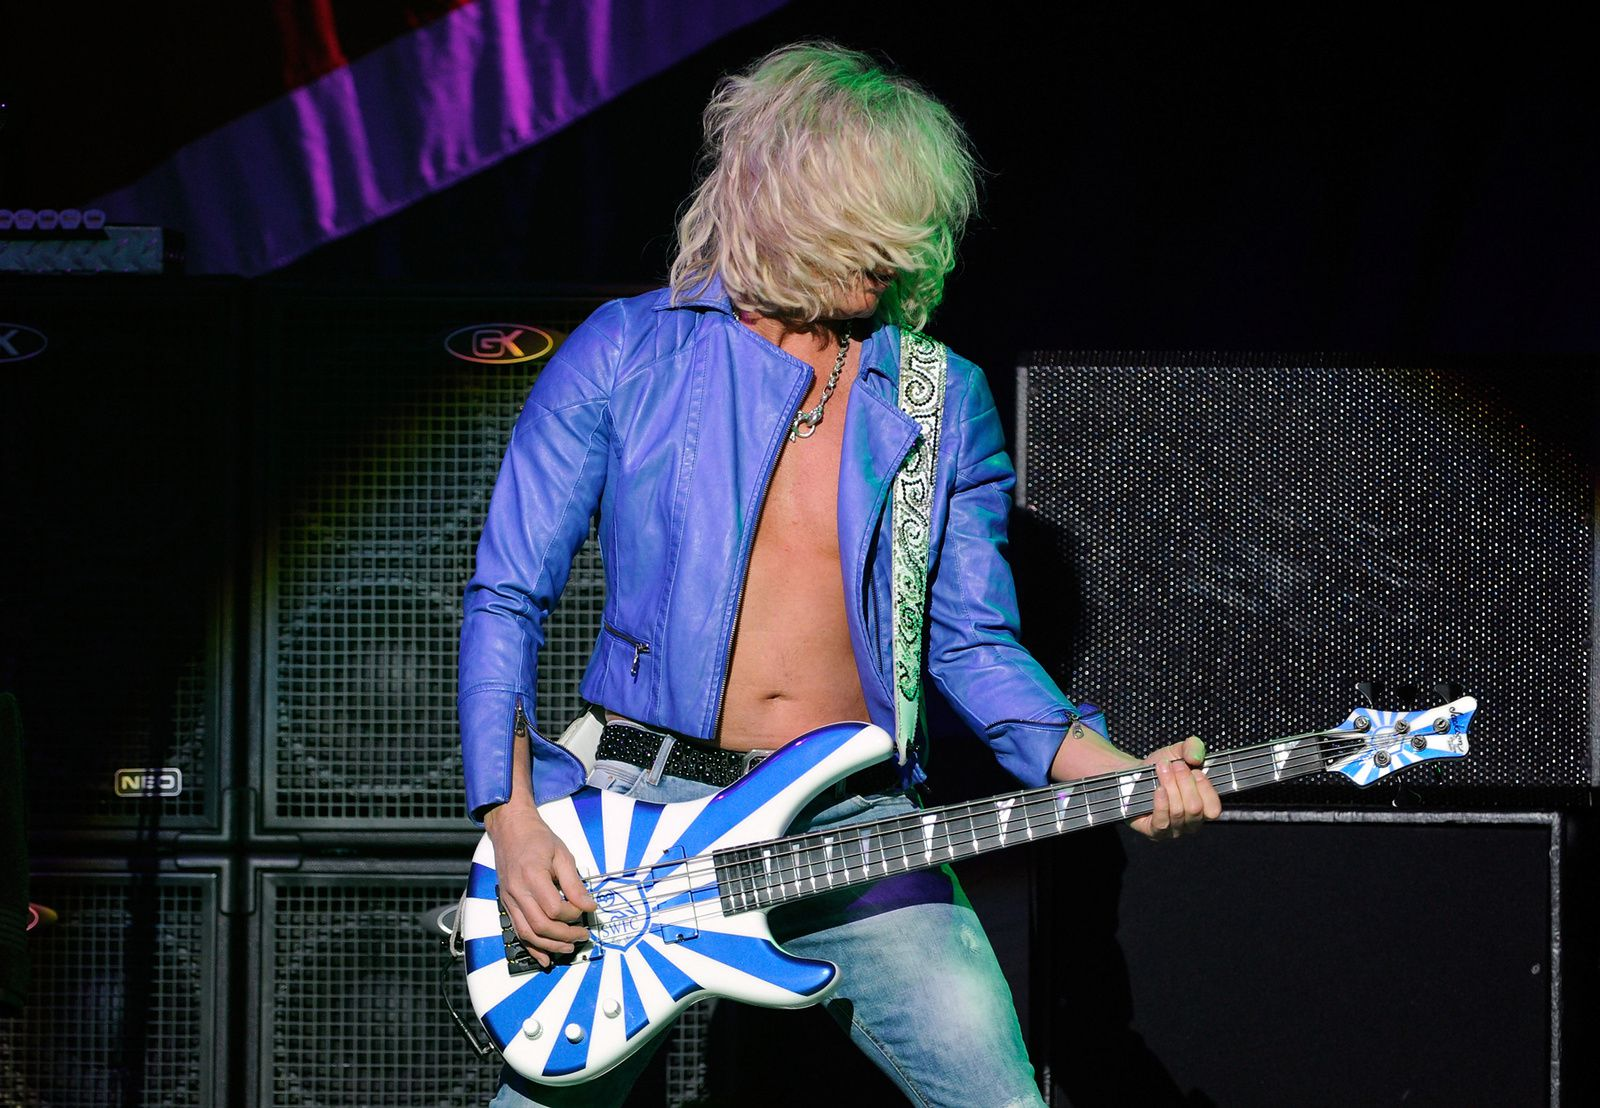 Rick Savage of Def Leppard performs on the opening night of Viva! Hysteria in Las Vegas (2013) - credit: David Becker/Getty Images